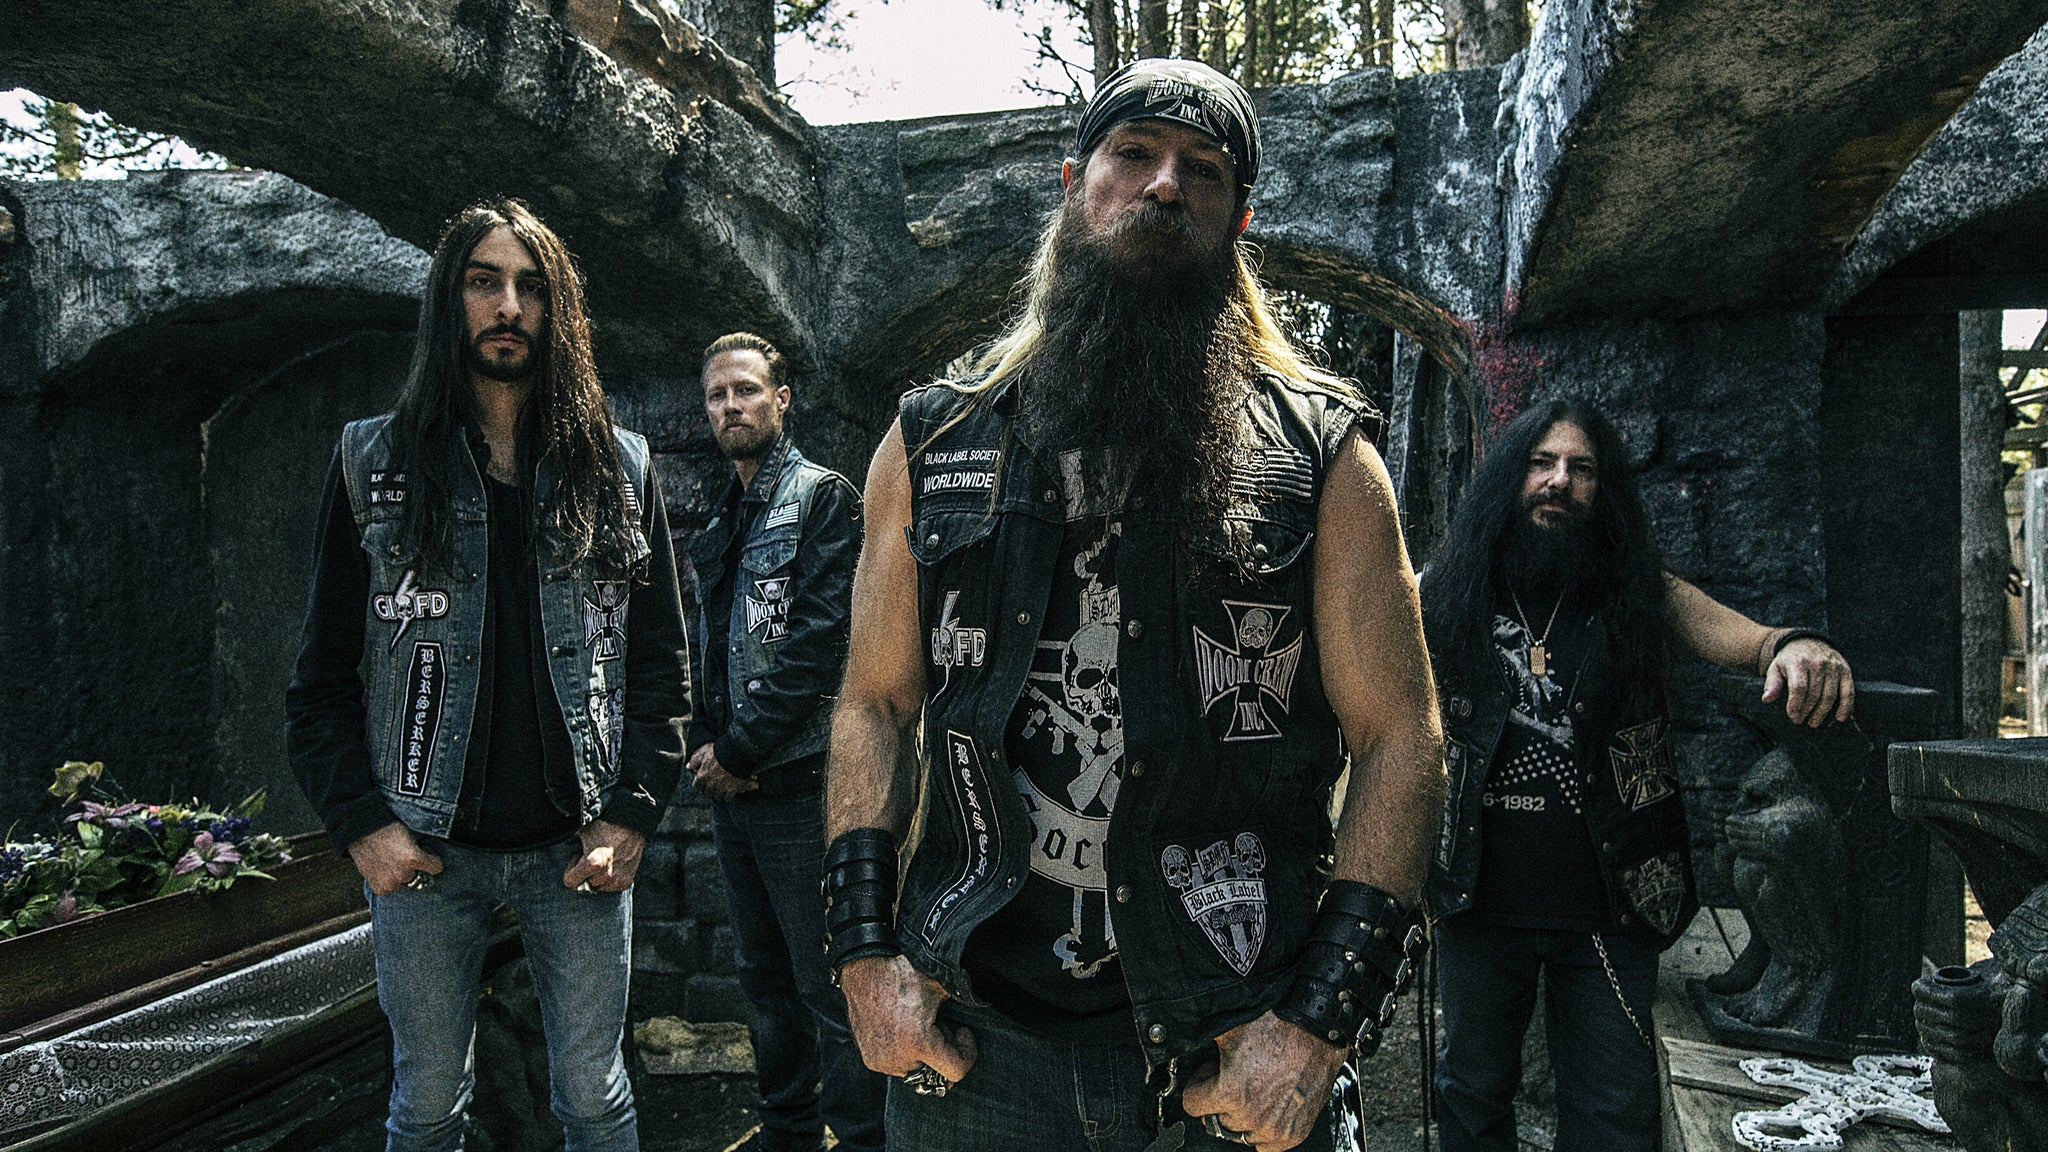 Black Label Society, Corrosion of Conformity, Eyehategod